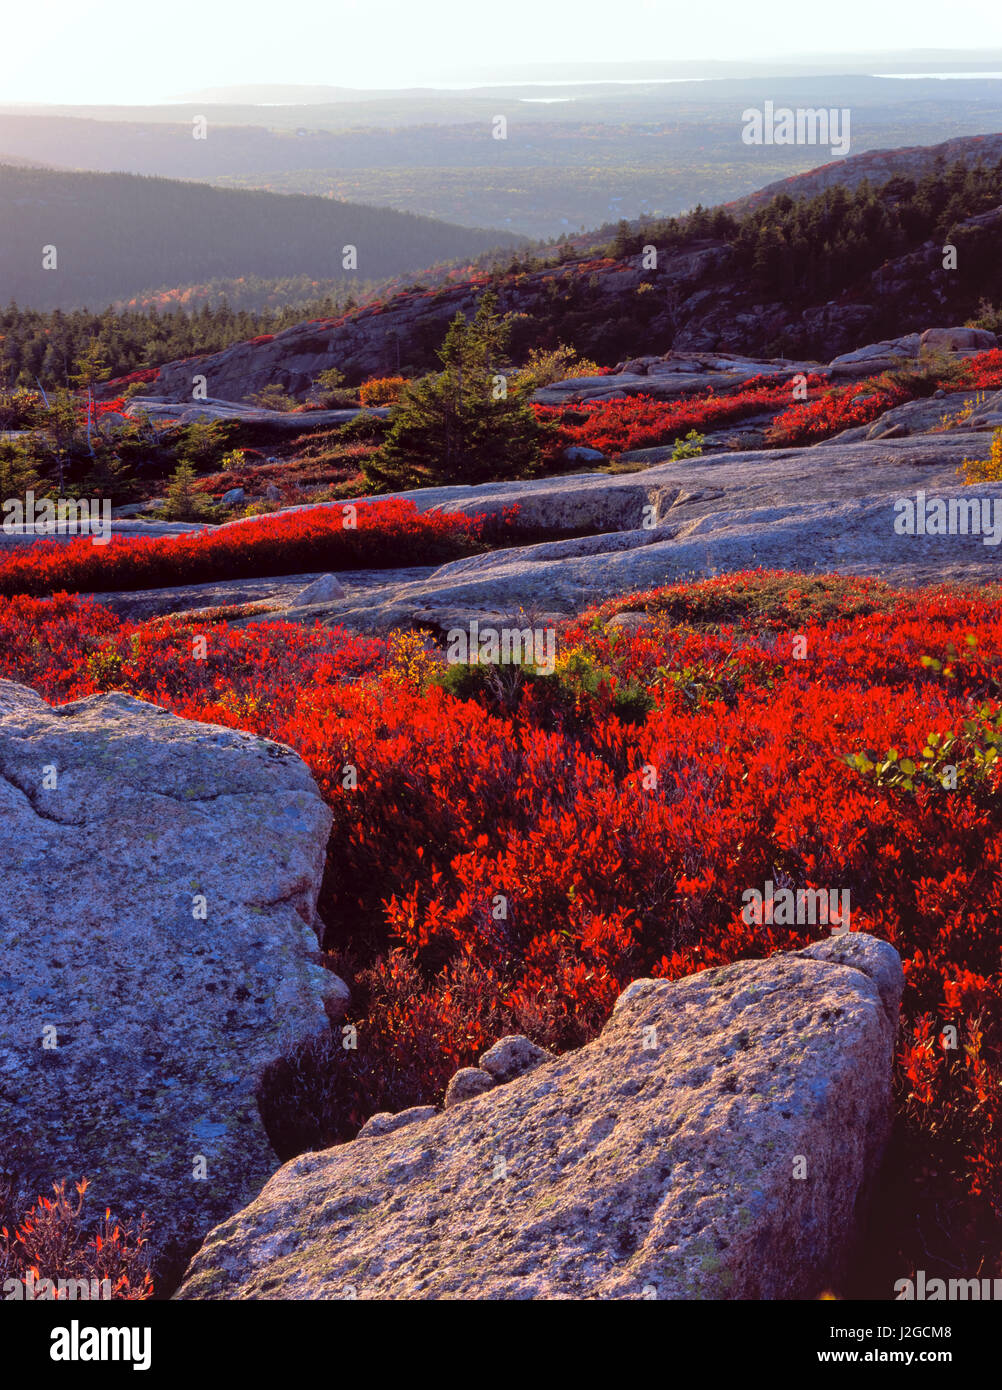 Acadia National Park, Maine. USA. Granite bedrock and scarlet foliage of black huckleberry (Gaylussacia baccata) - Stock Image